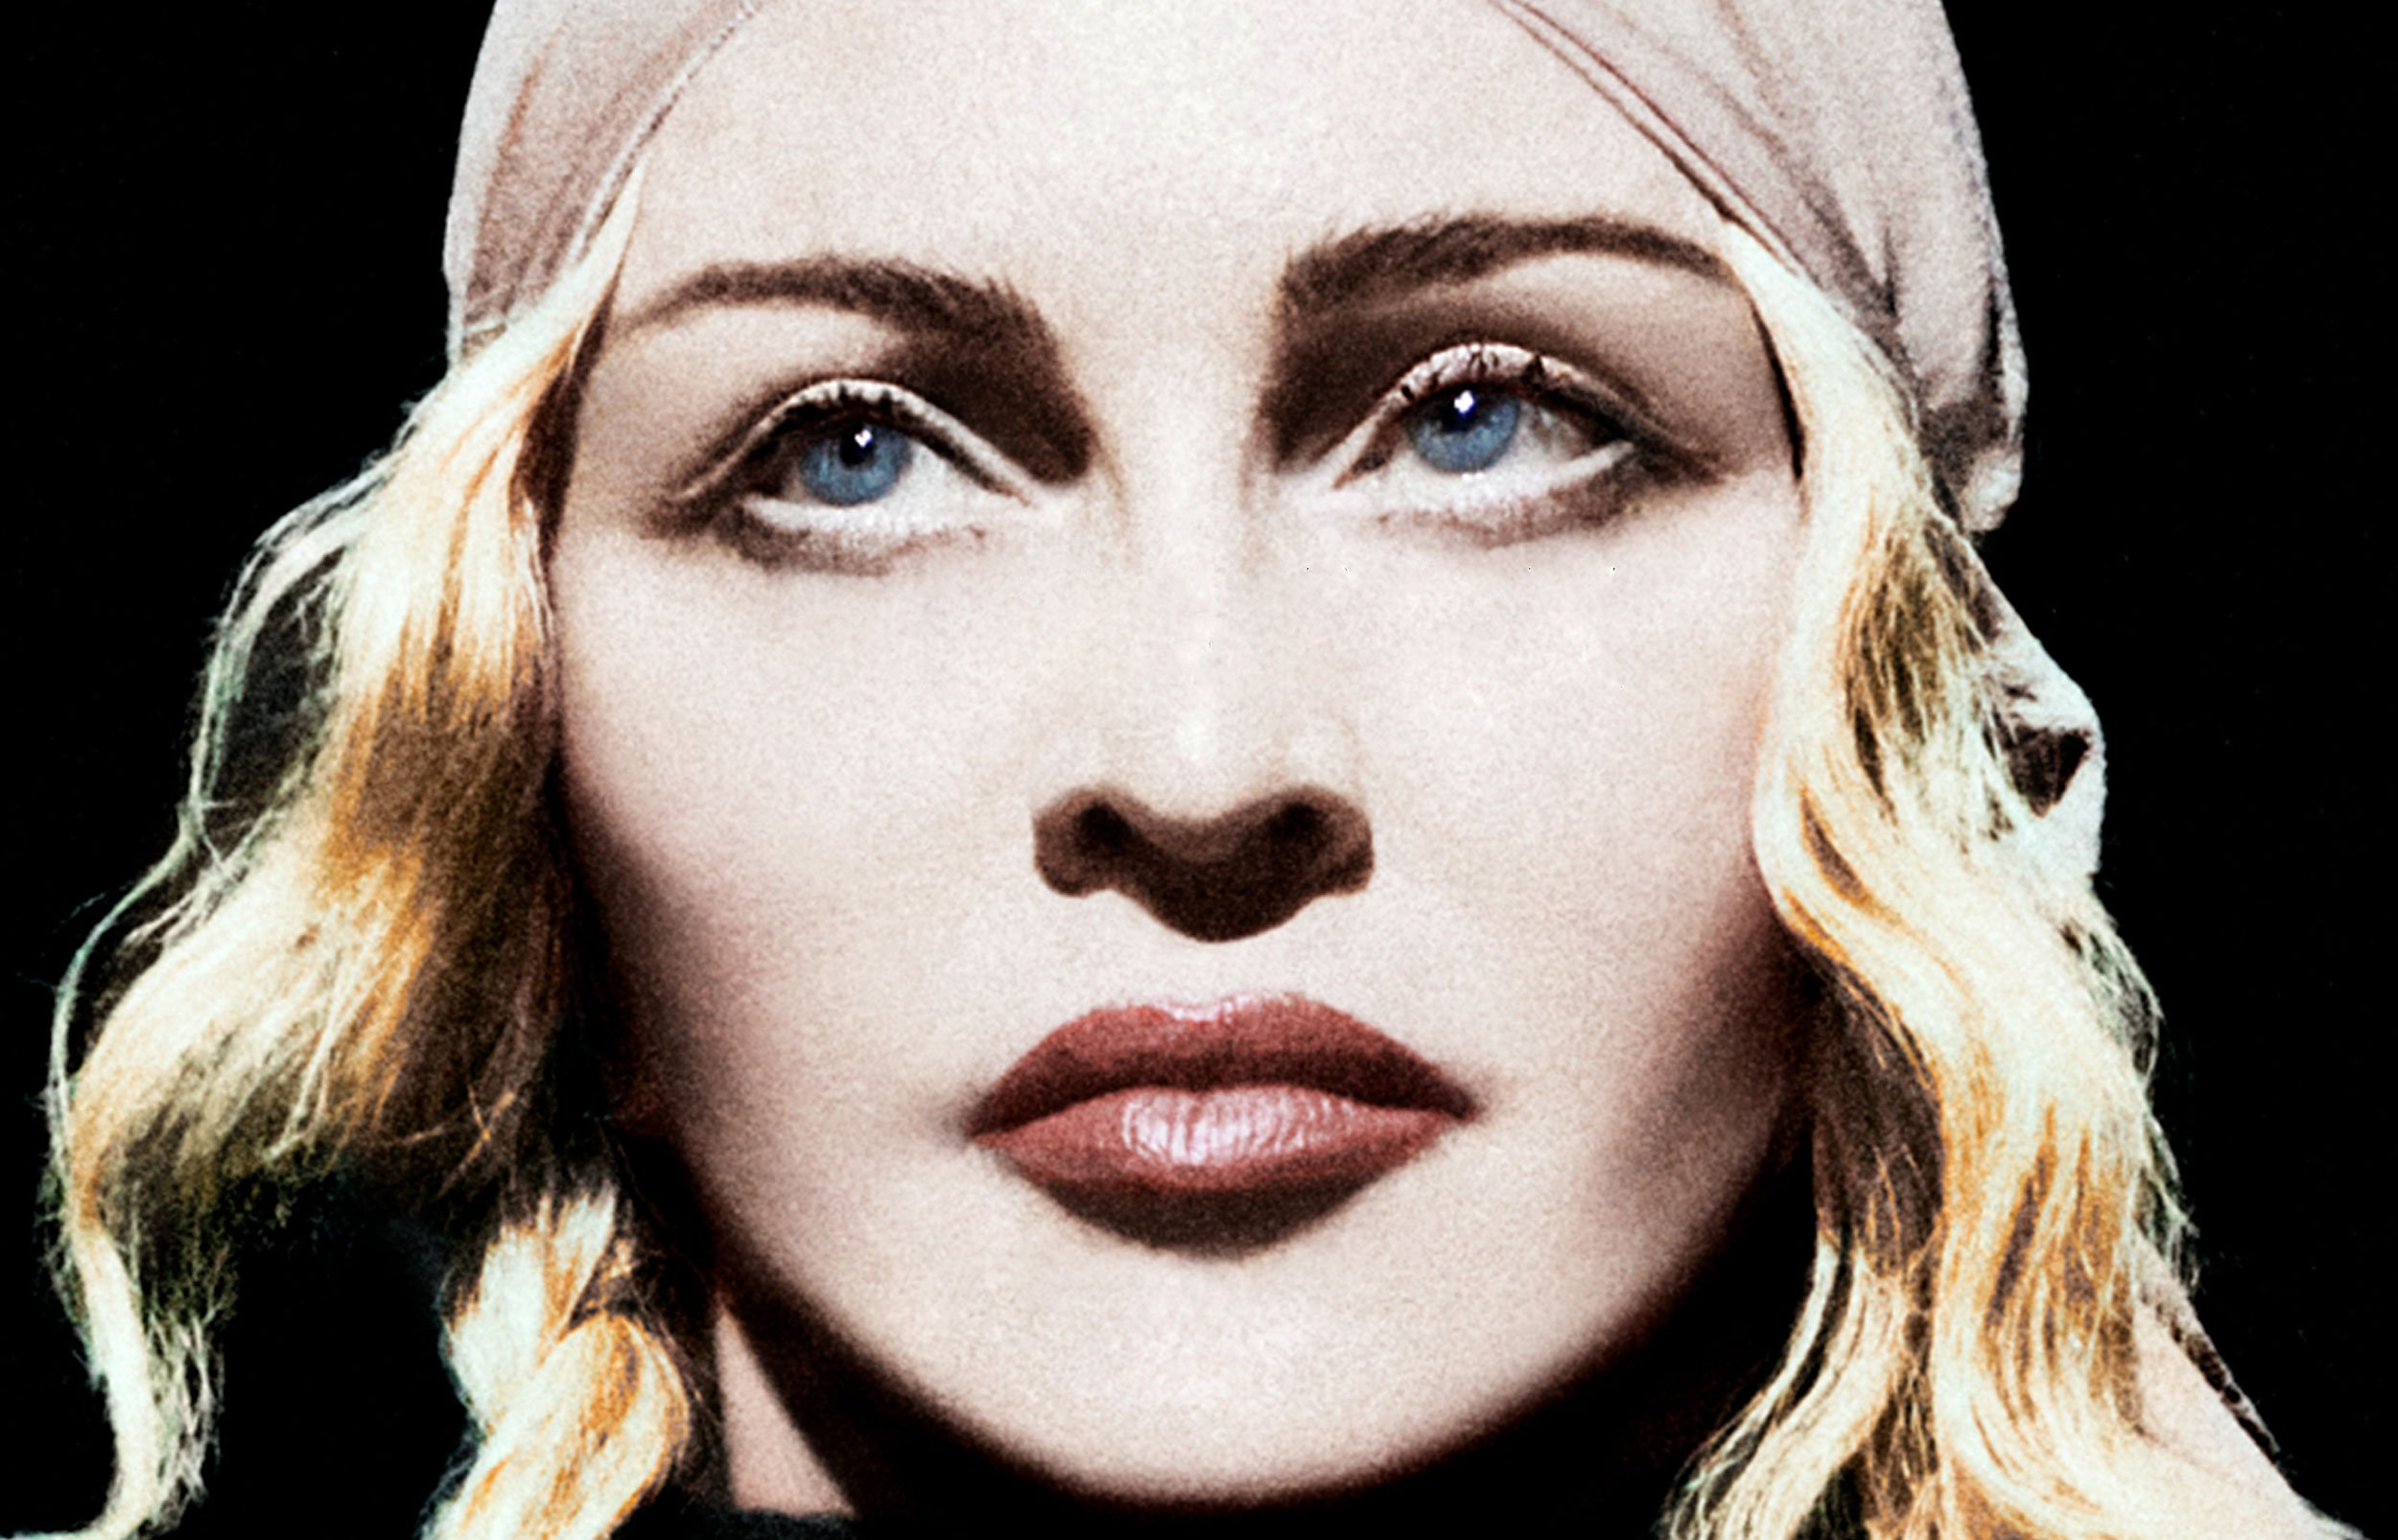 Madonna Madame X Review: The Album is a Fearless, Eccentric Musical